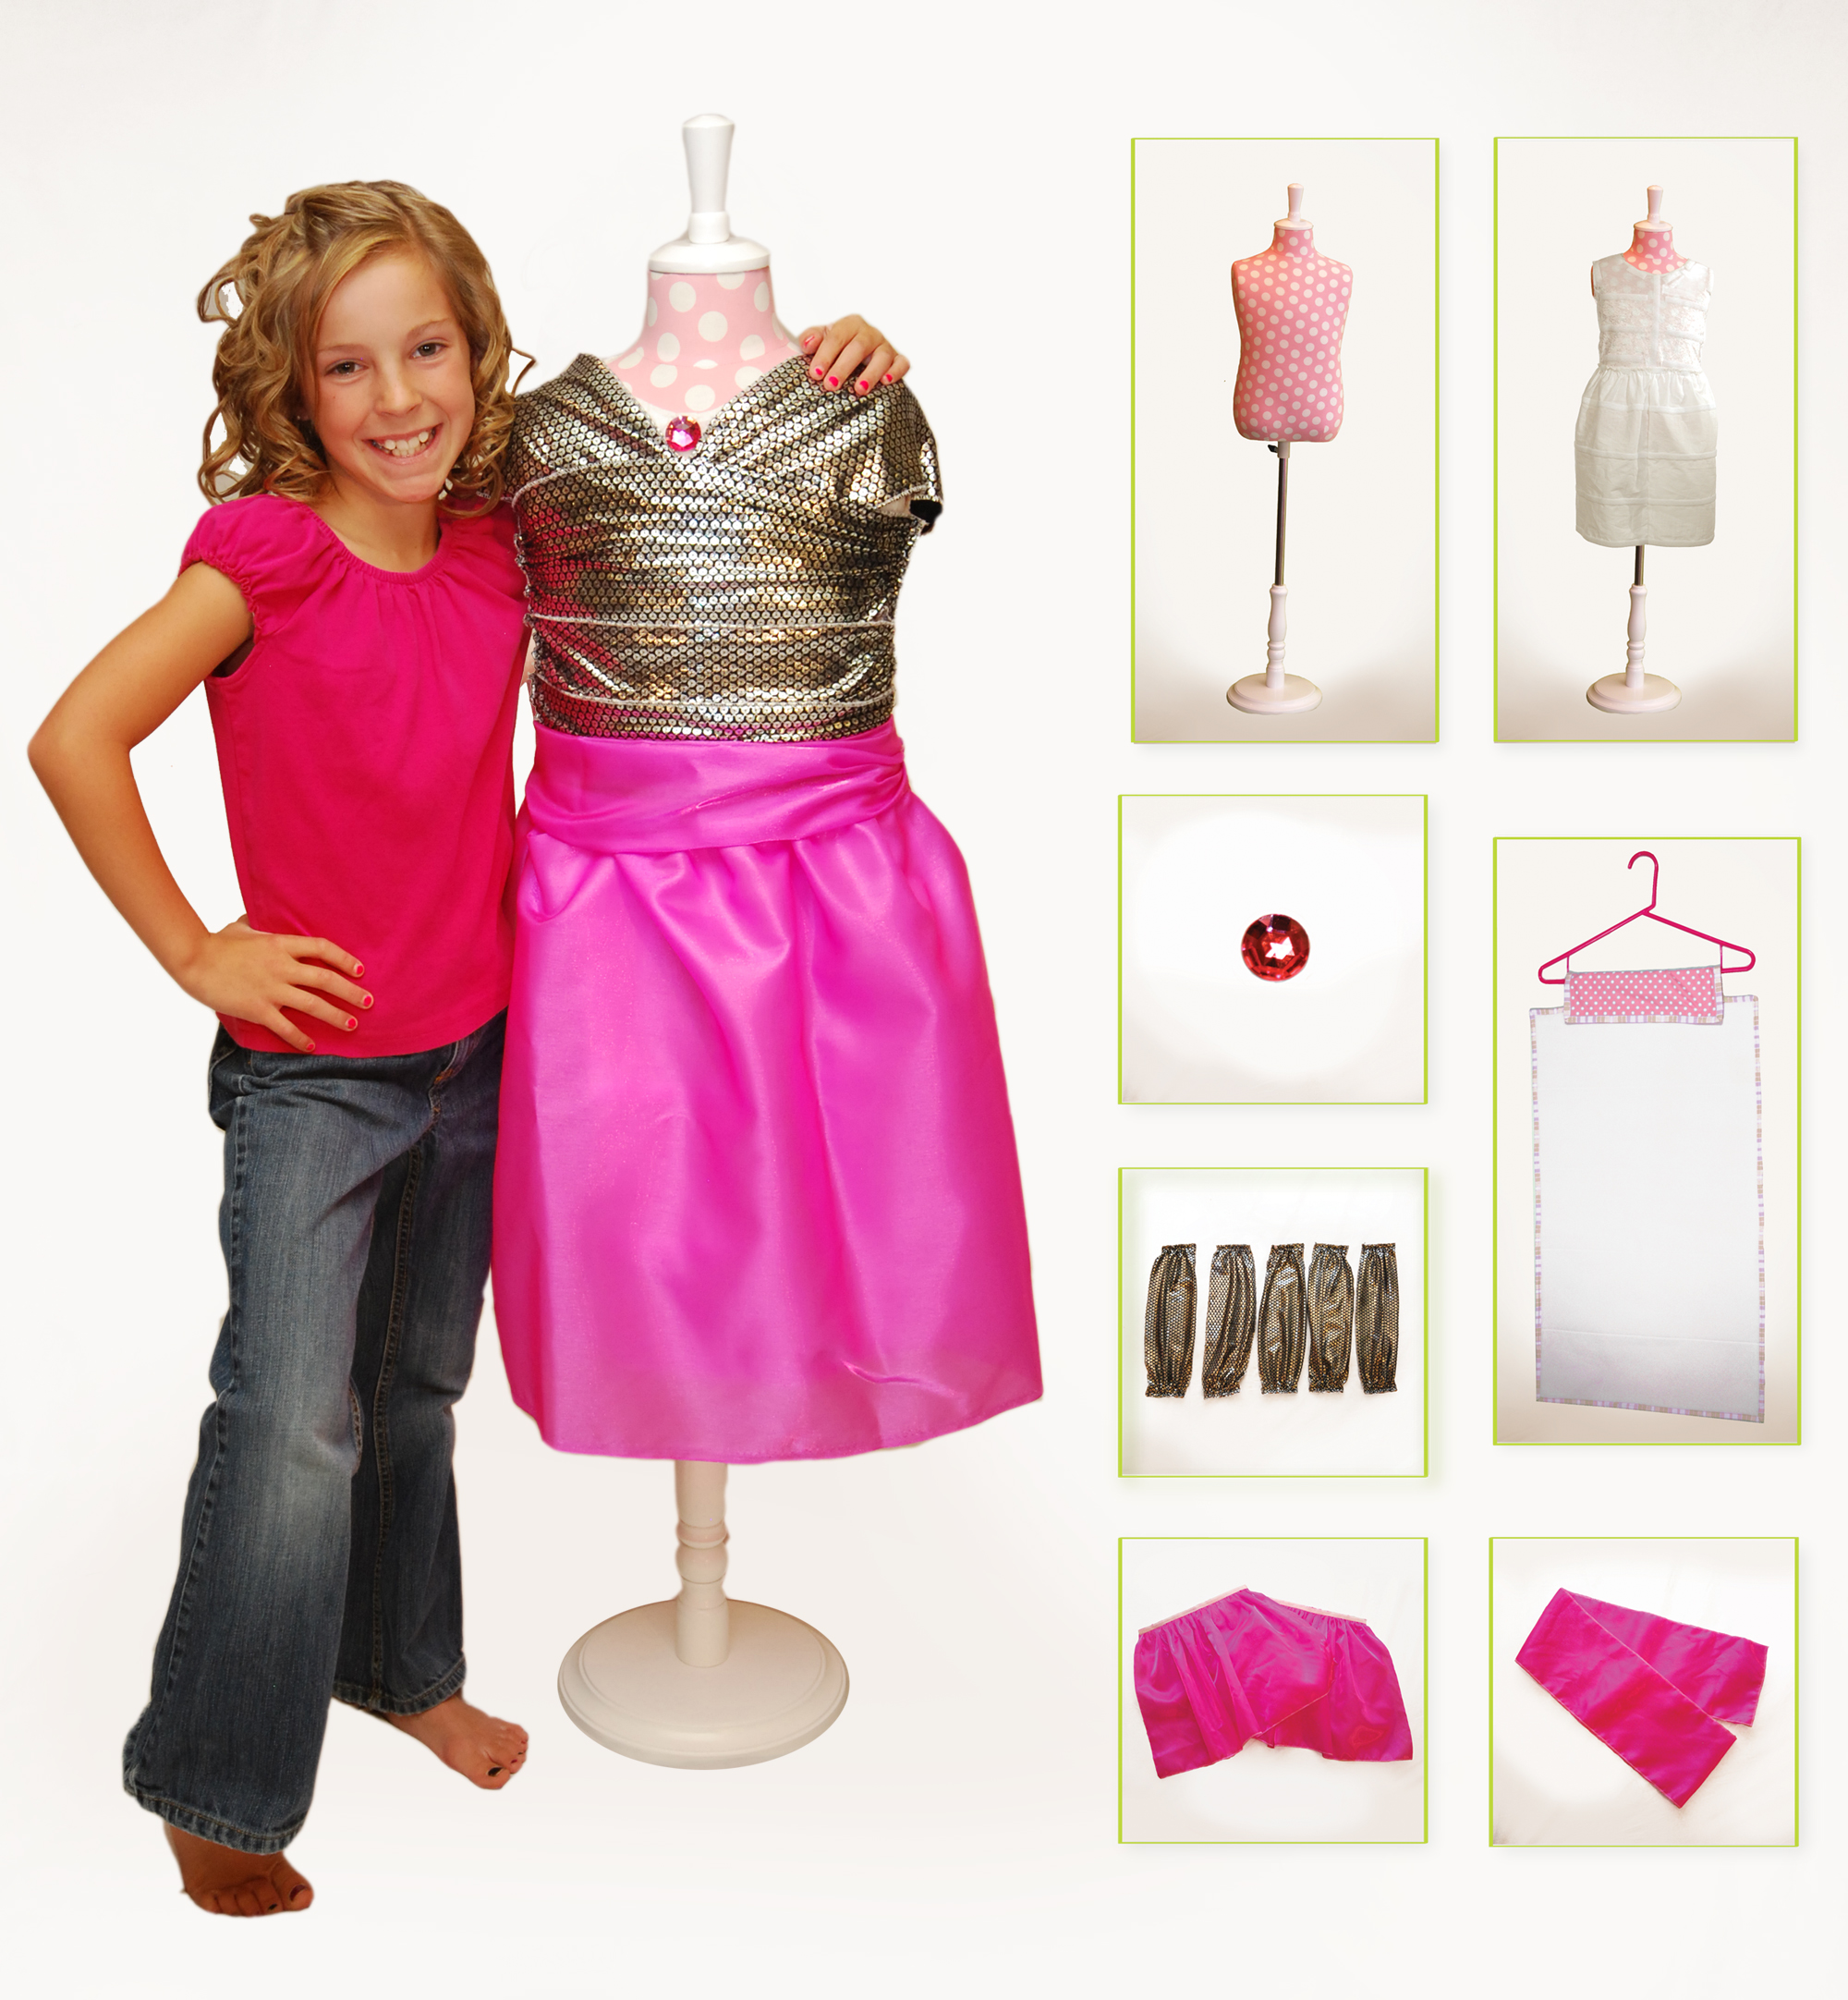 Shailie Revolutionary Dress Up Toy for Girls The Crafting Chicks